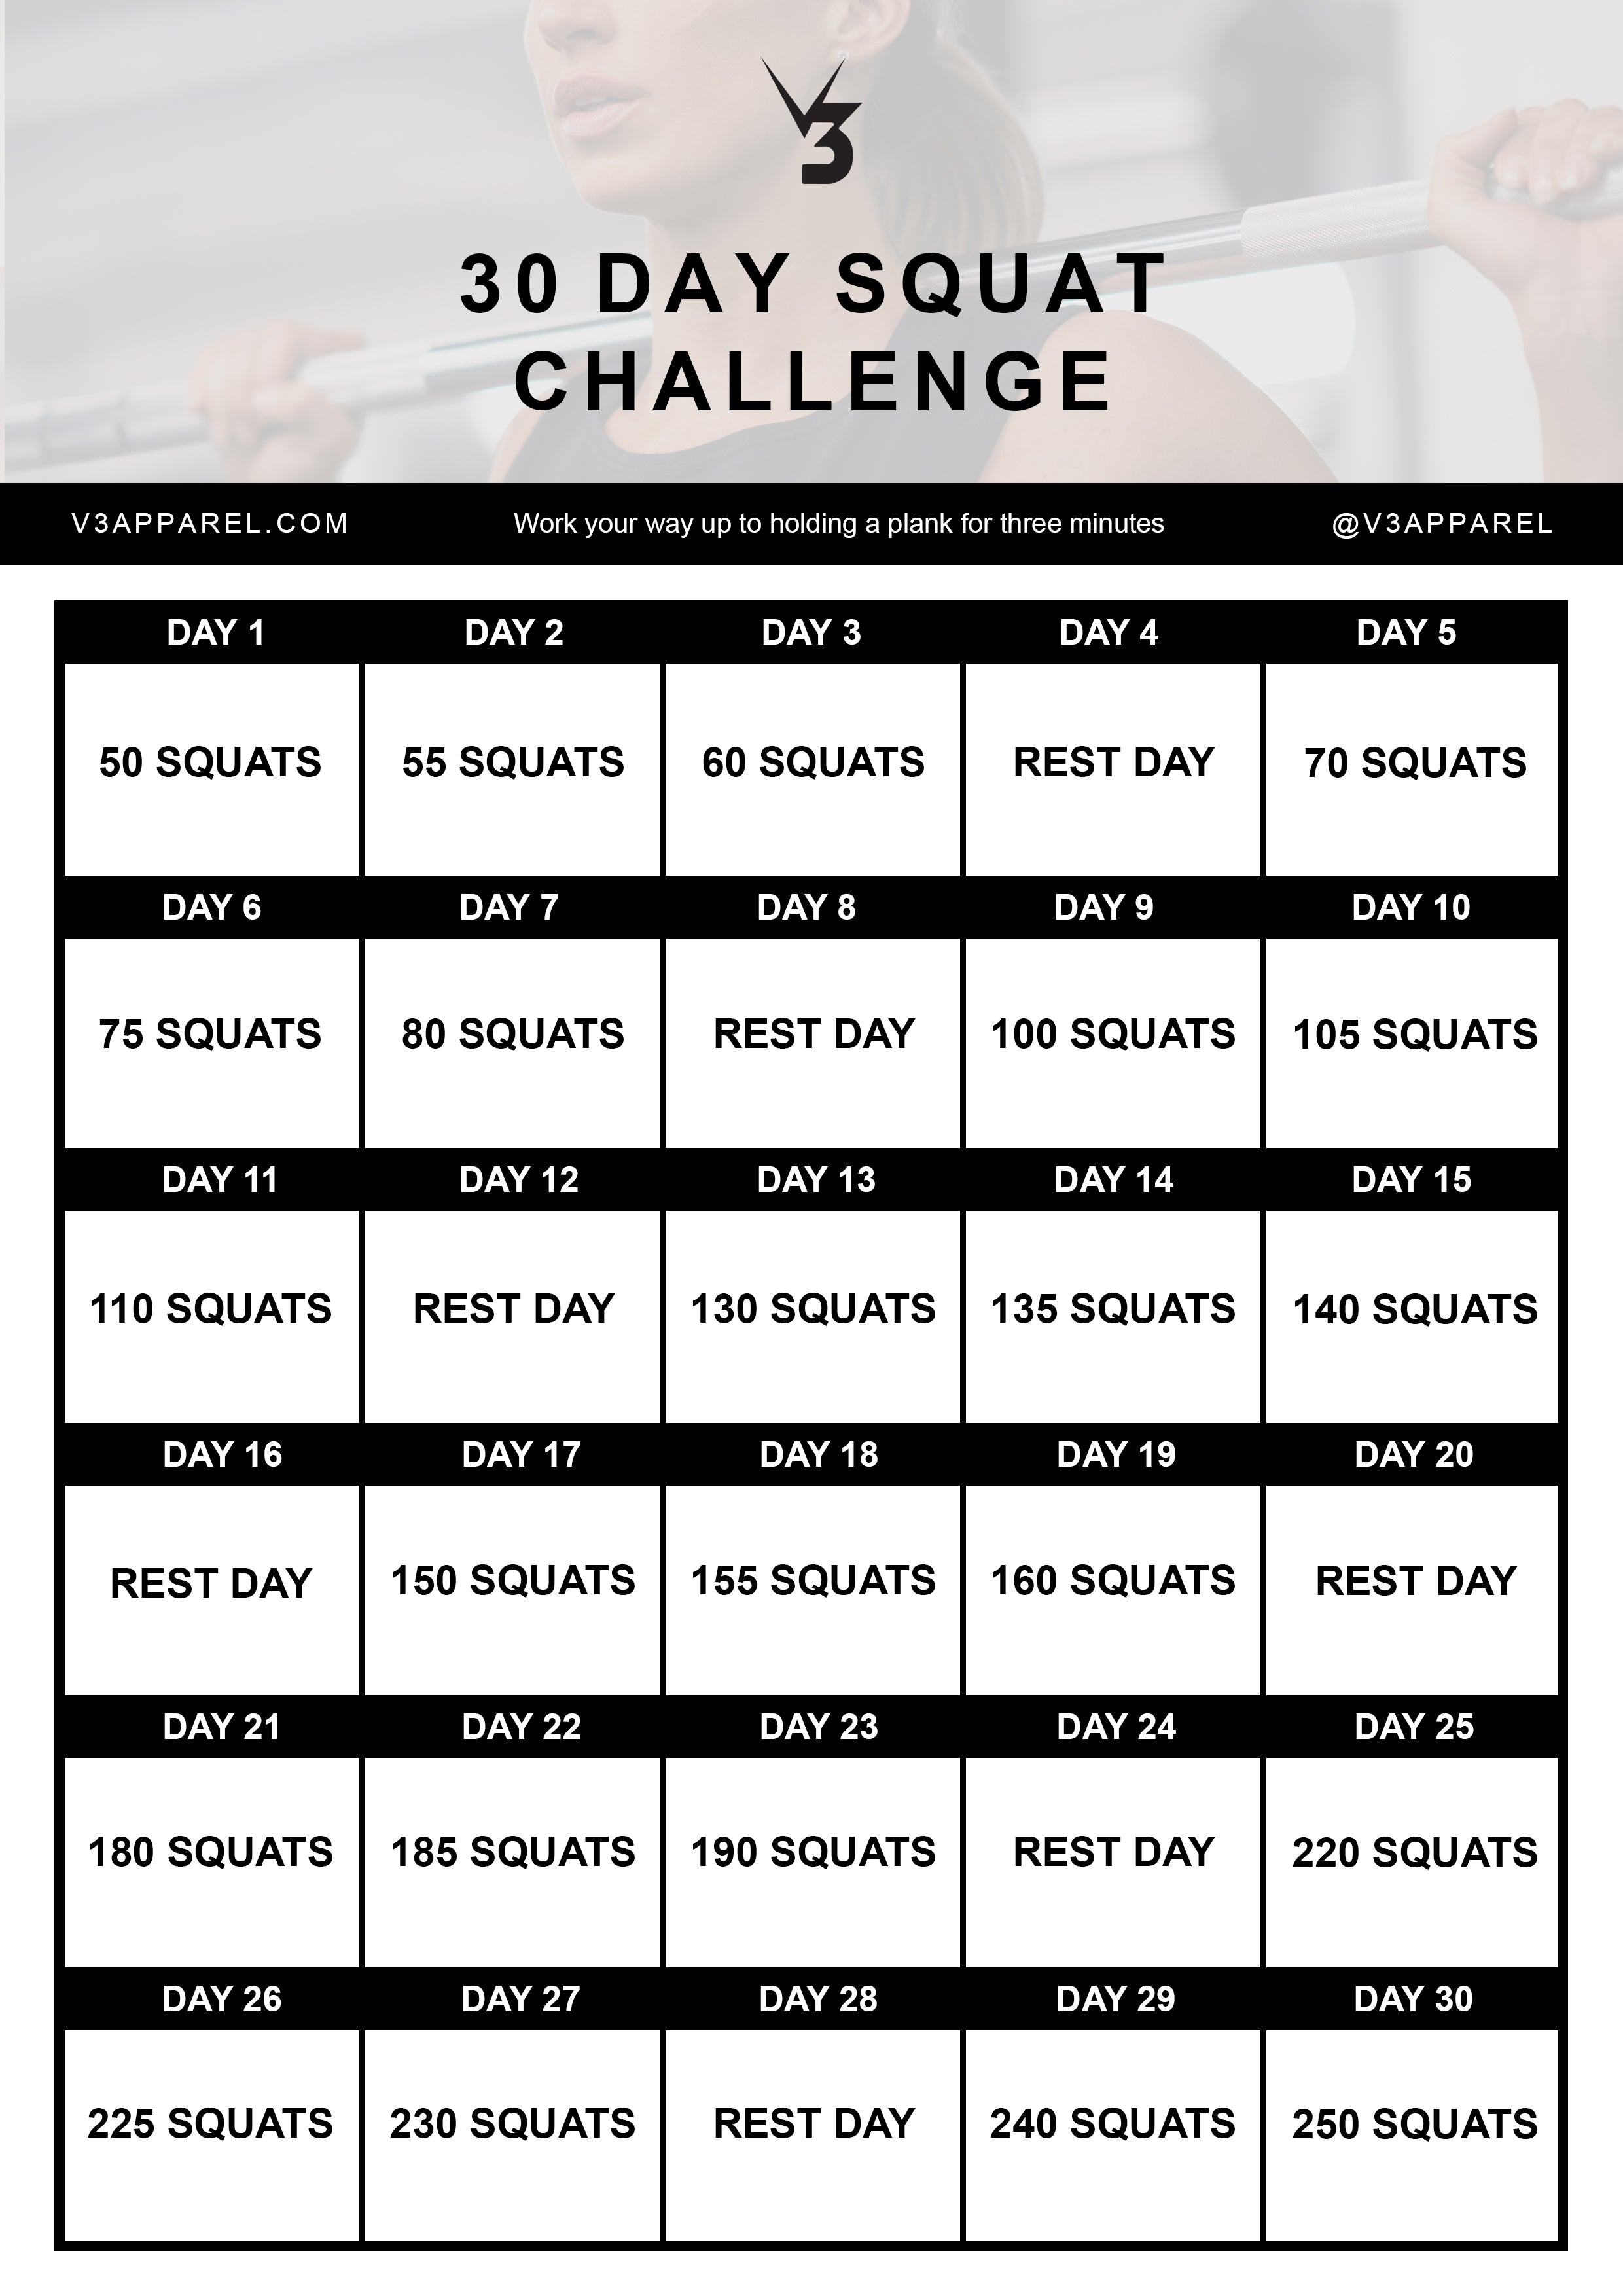 Free 30 day squat challenge workout programme for men and women, booty growth in just 30 days